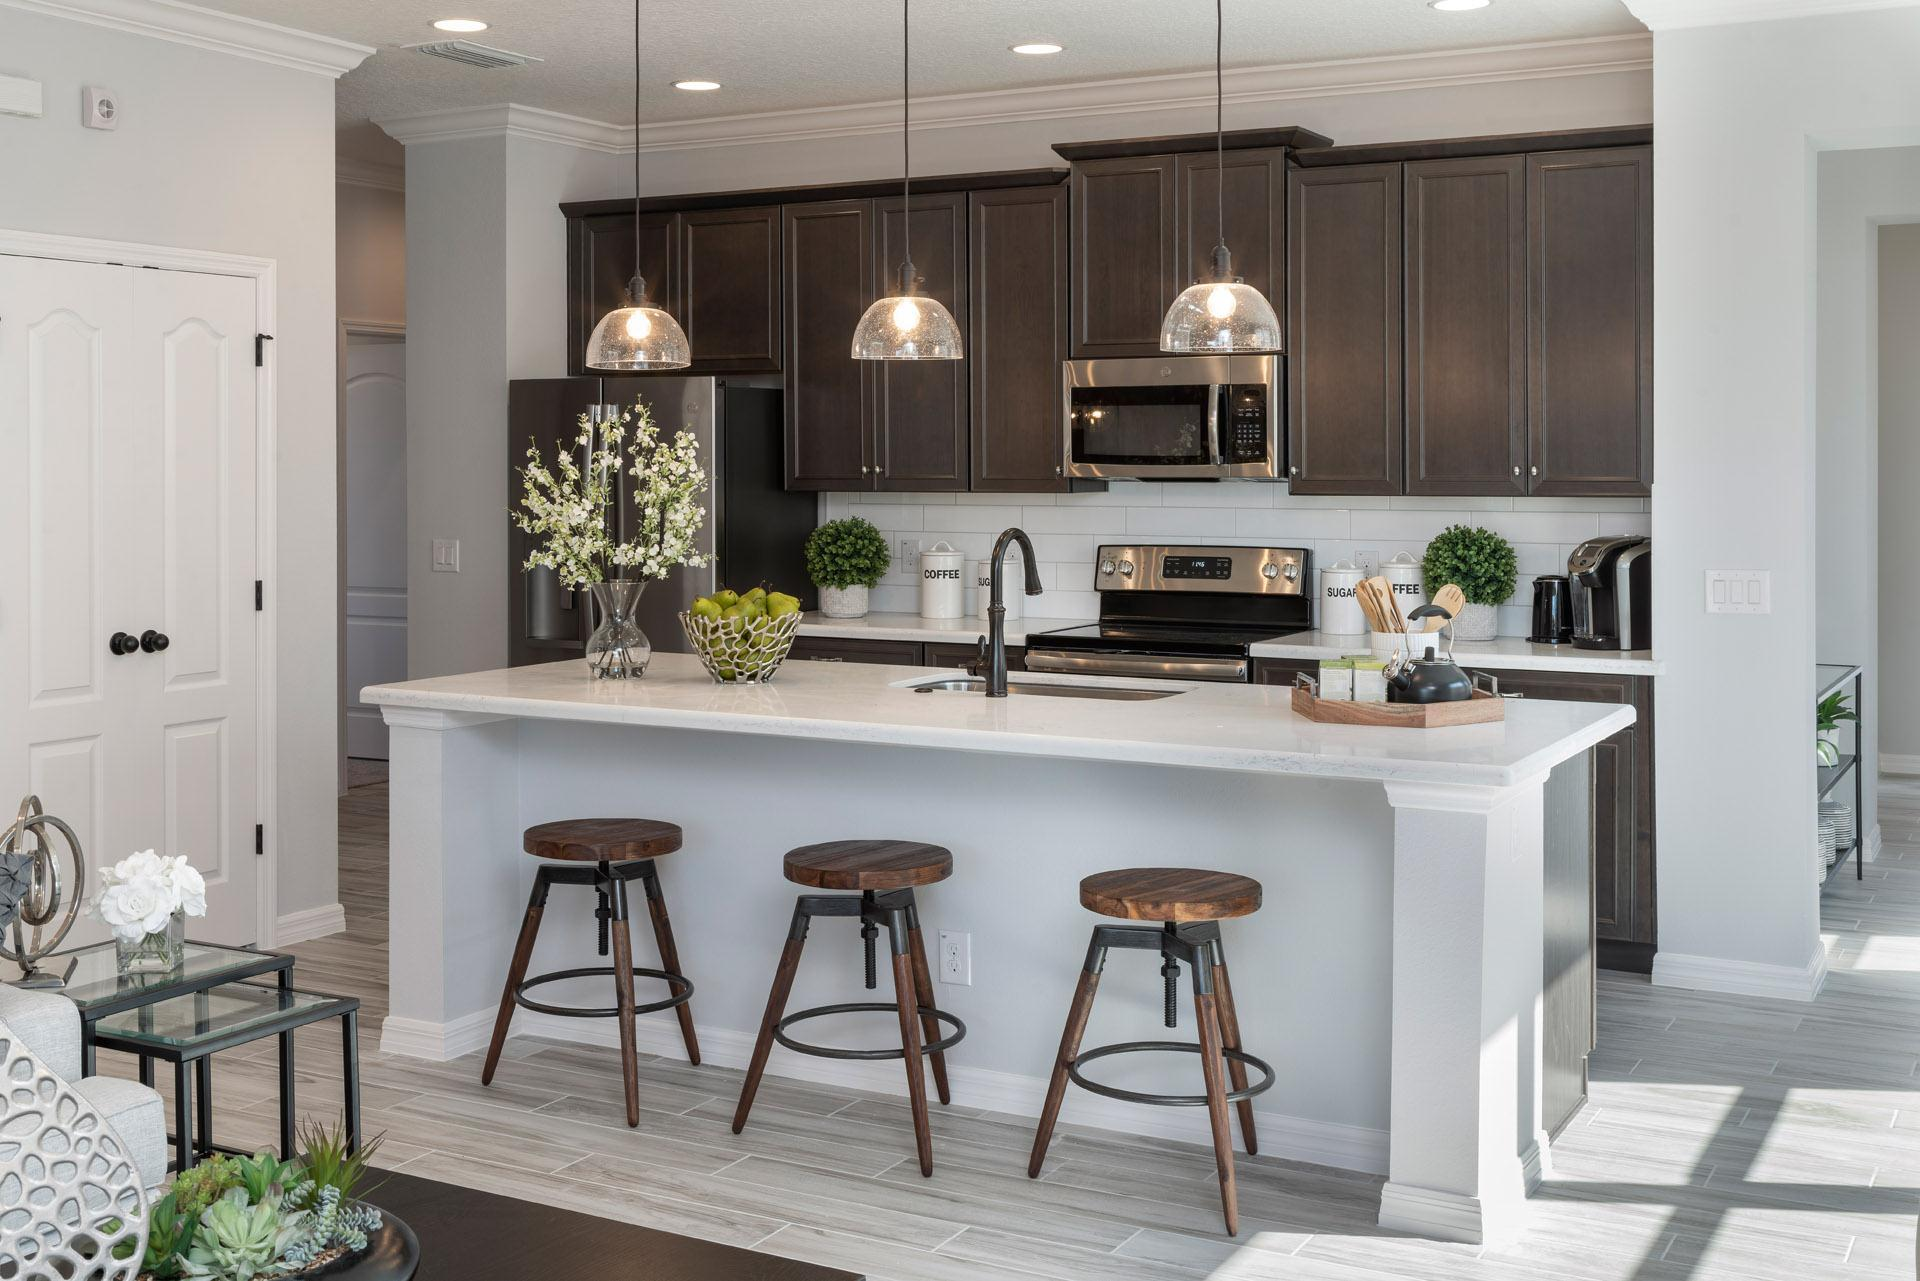 Kitchen featured in the Delano By Hanover Family Builders in Orlando, FL